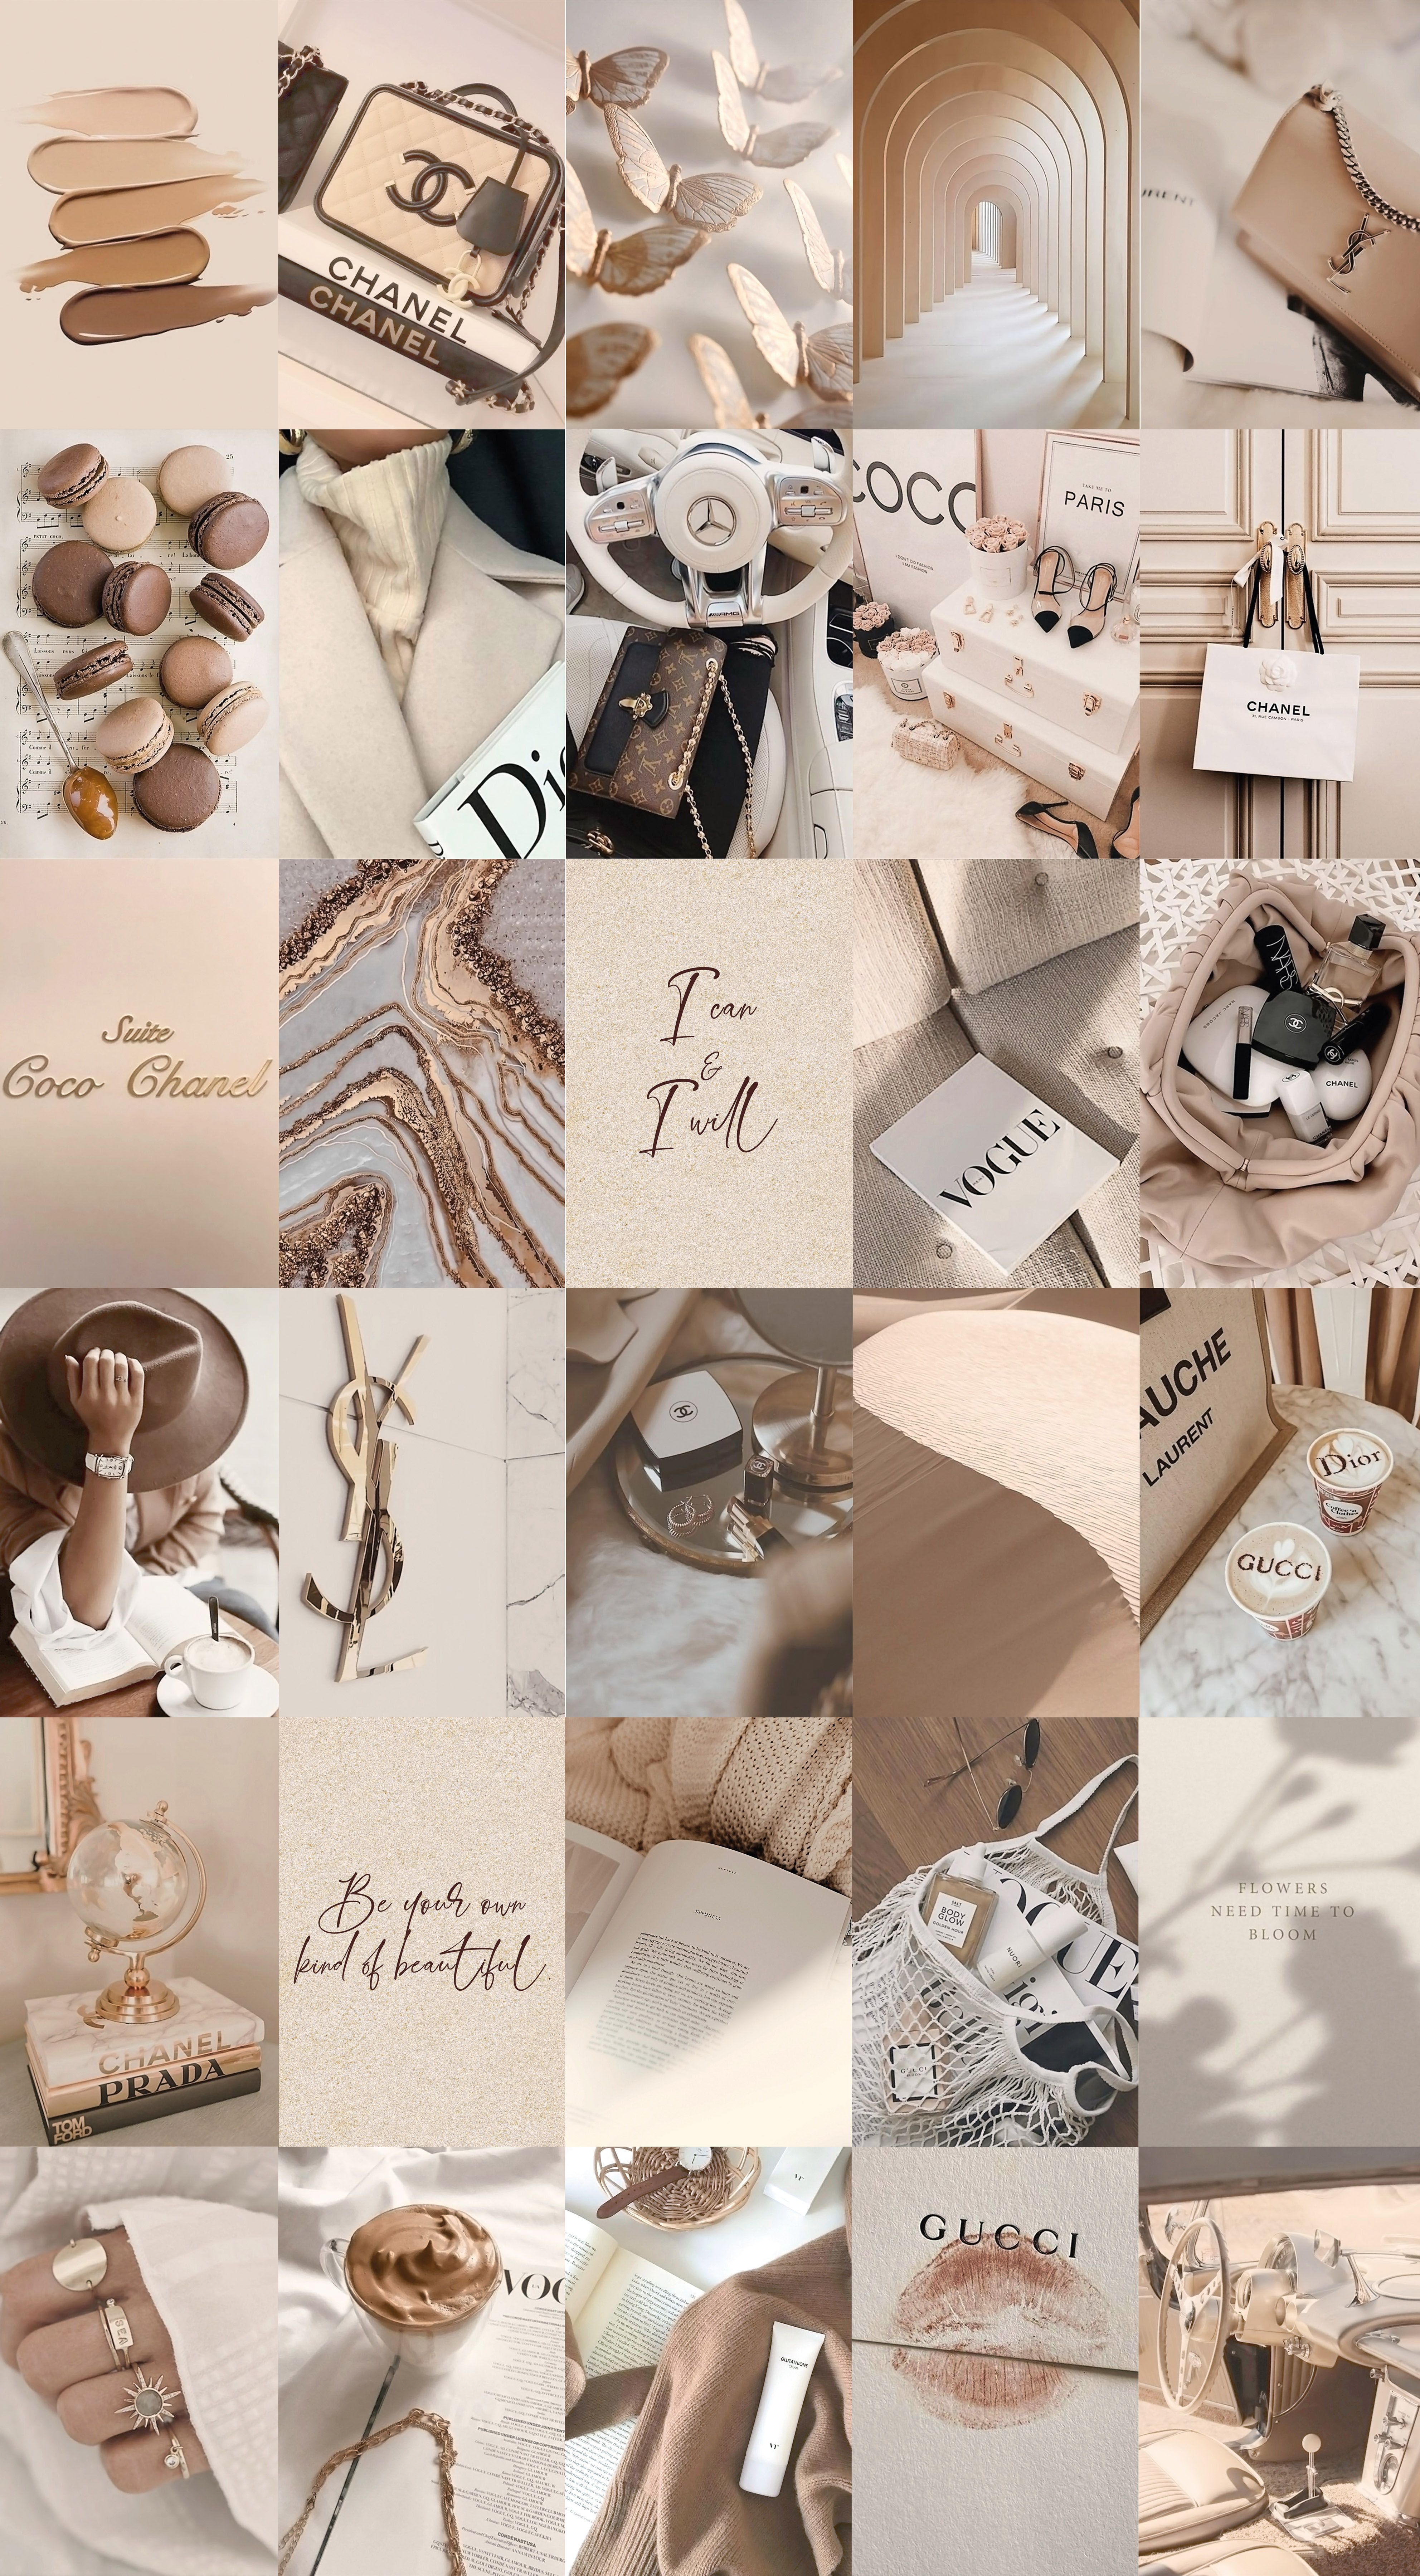 Spice up your room with this aesthetic beige glam wall collage kit!